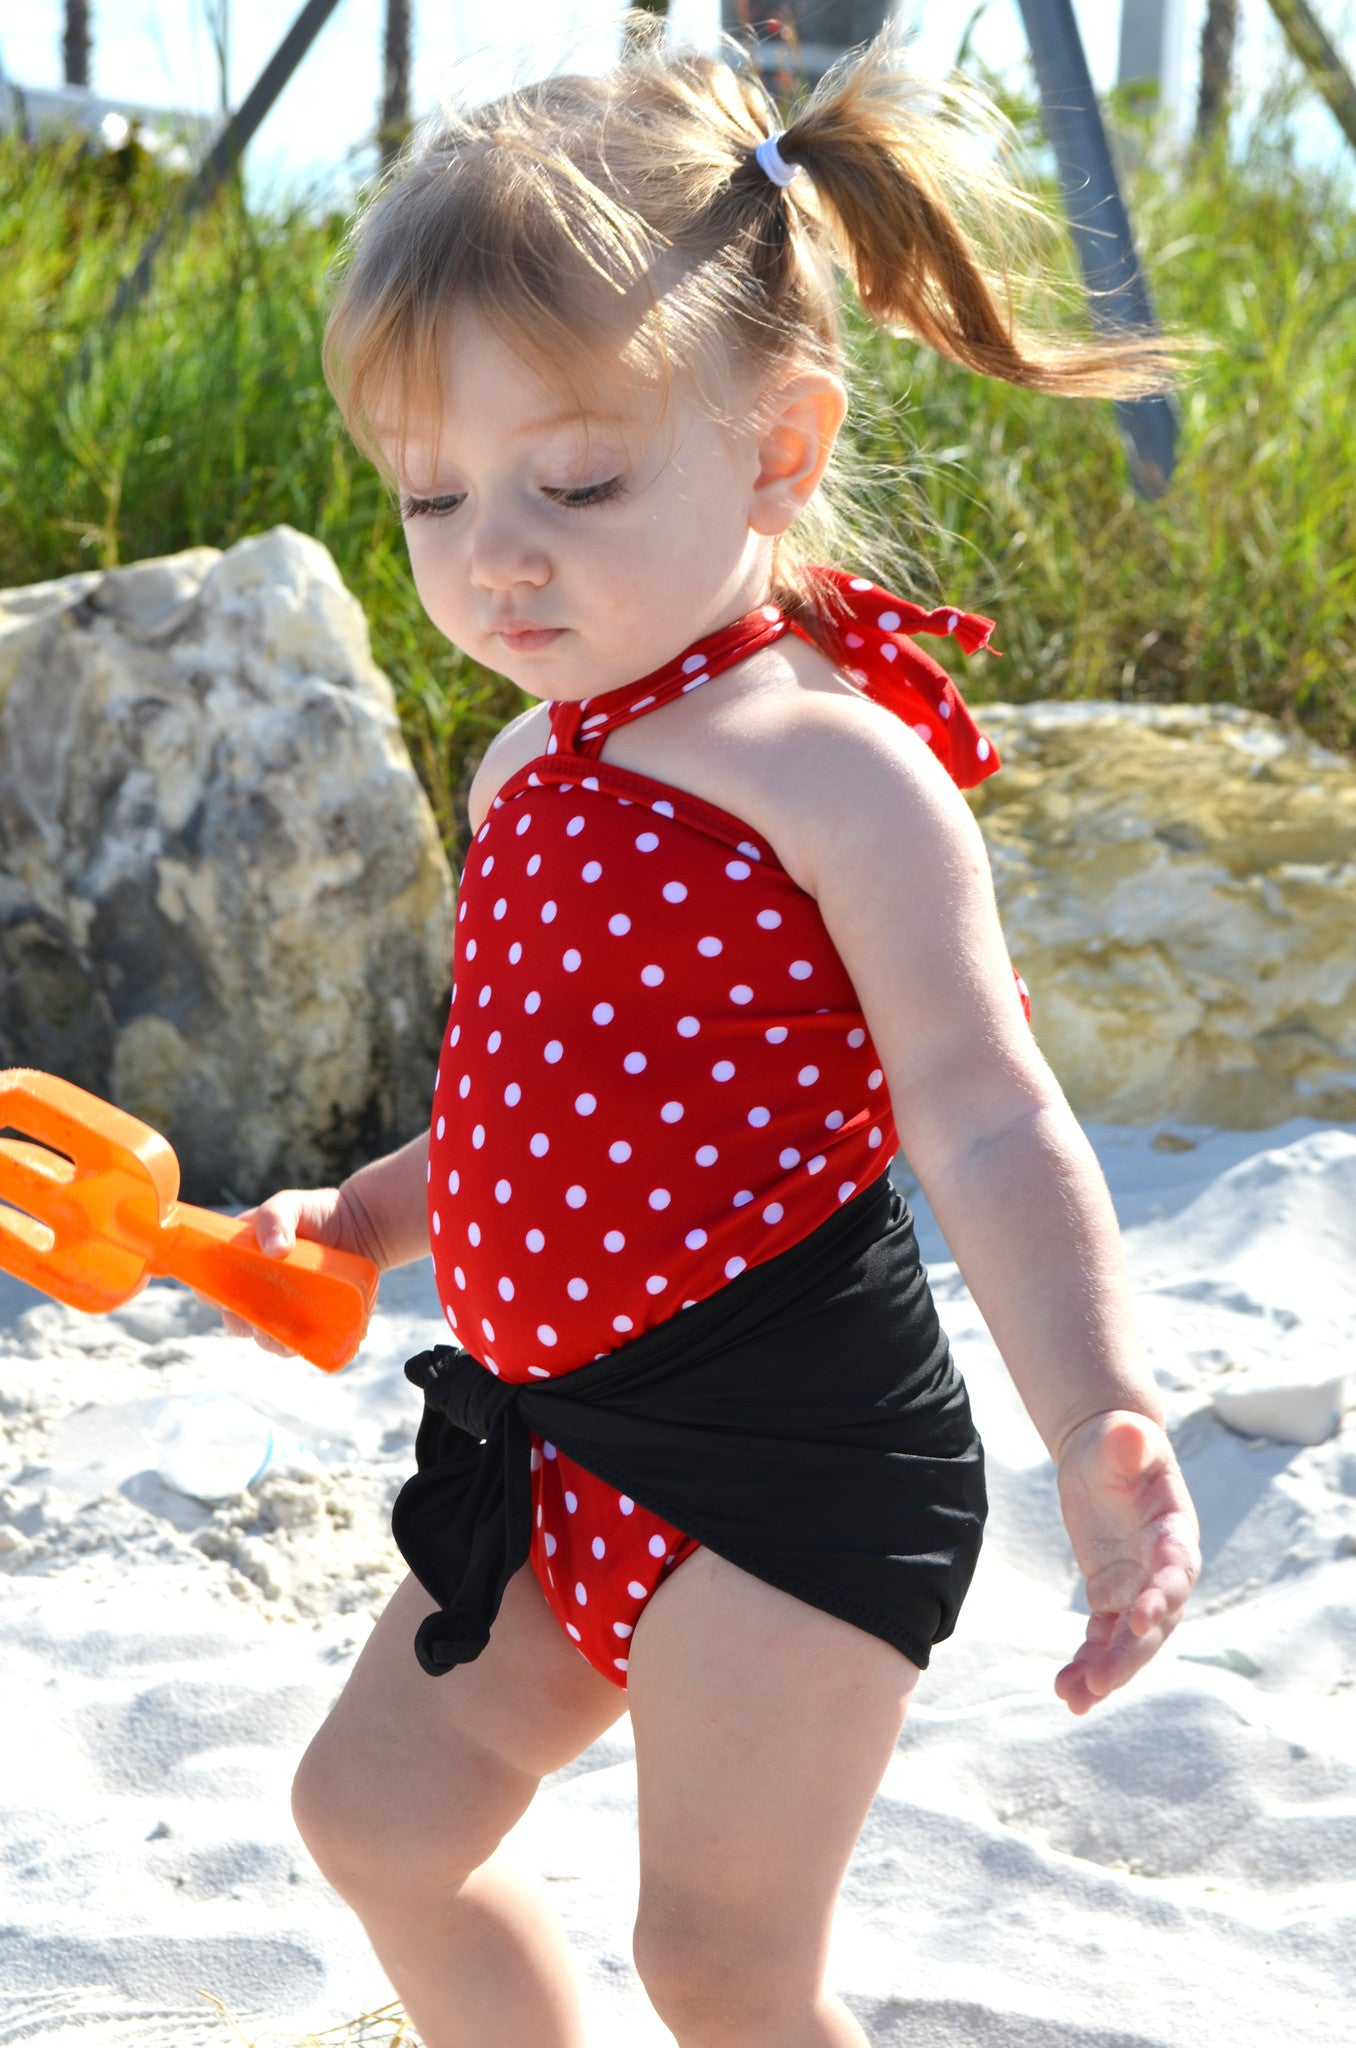 c0e7b5c4c6 Baby Bathing Suit Classic Black with Red and White Polka Dots Wrap Around  Swimsuit - hisOpal